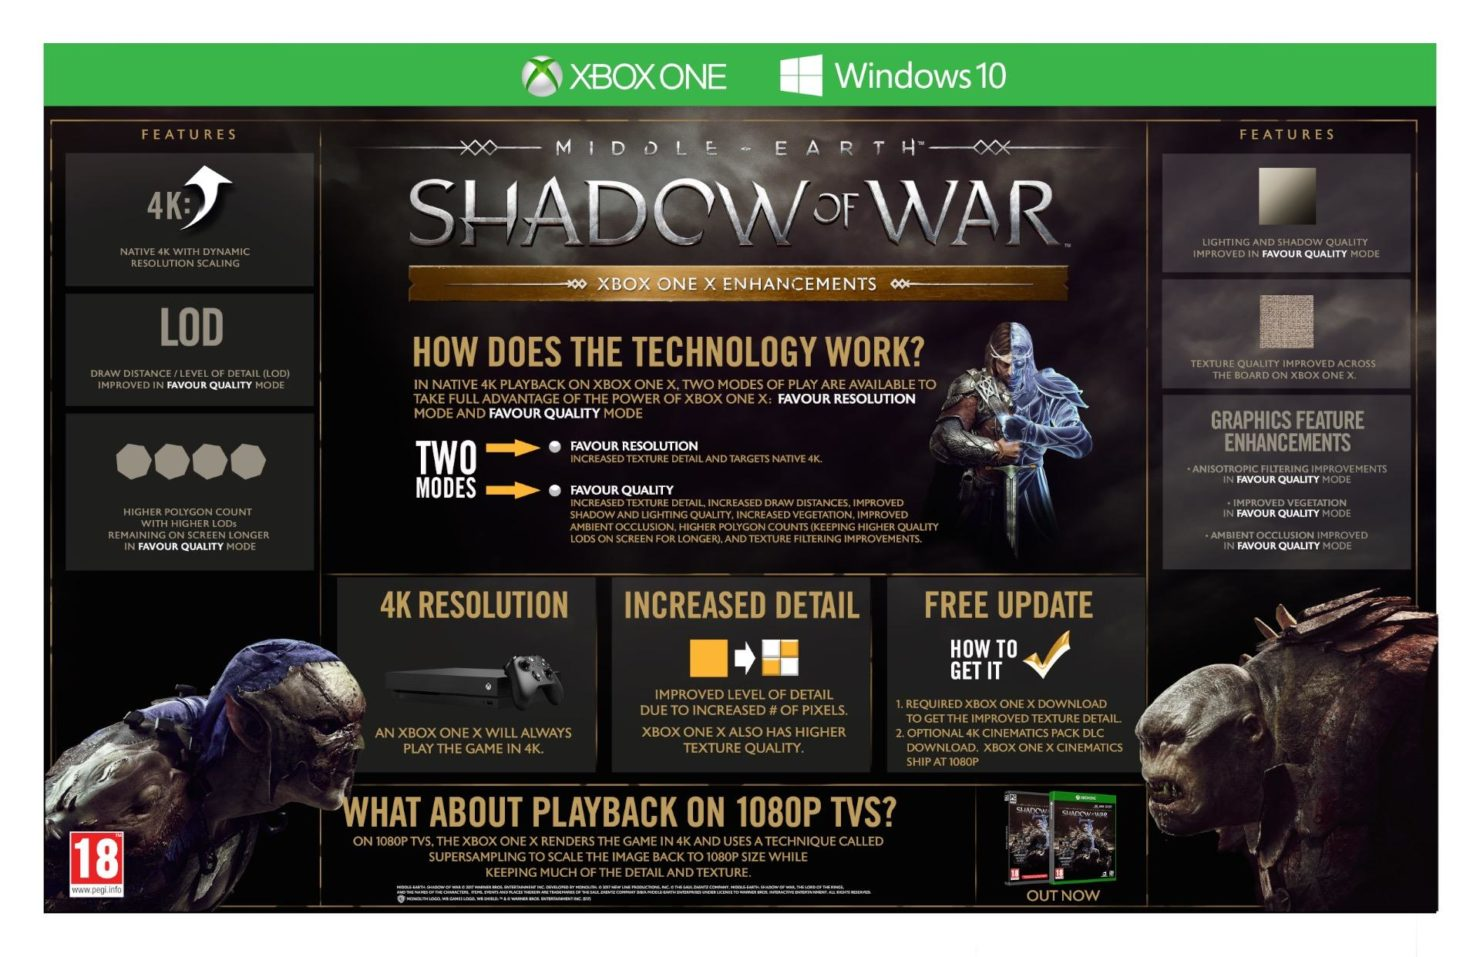 shadow of war xbox one x enhancements